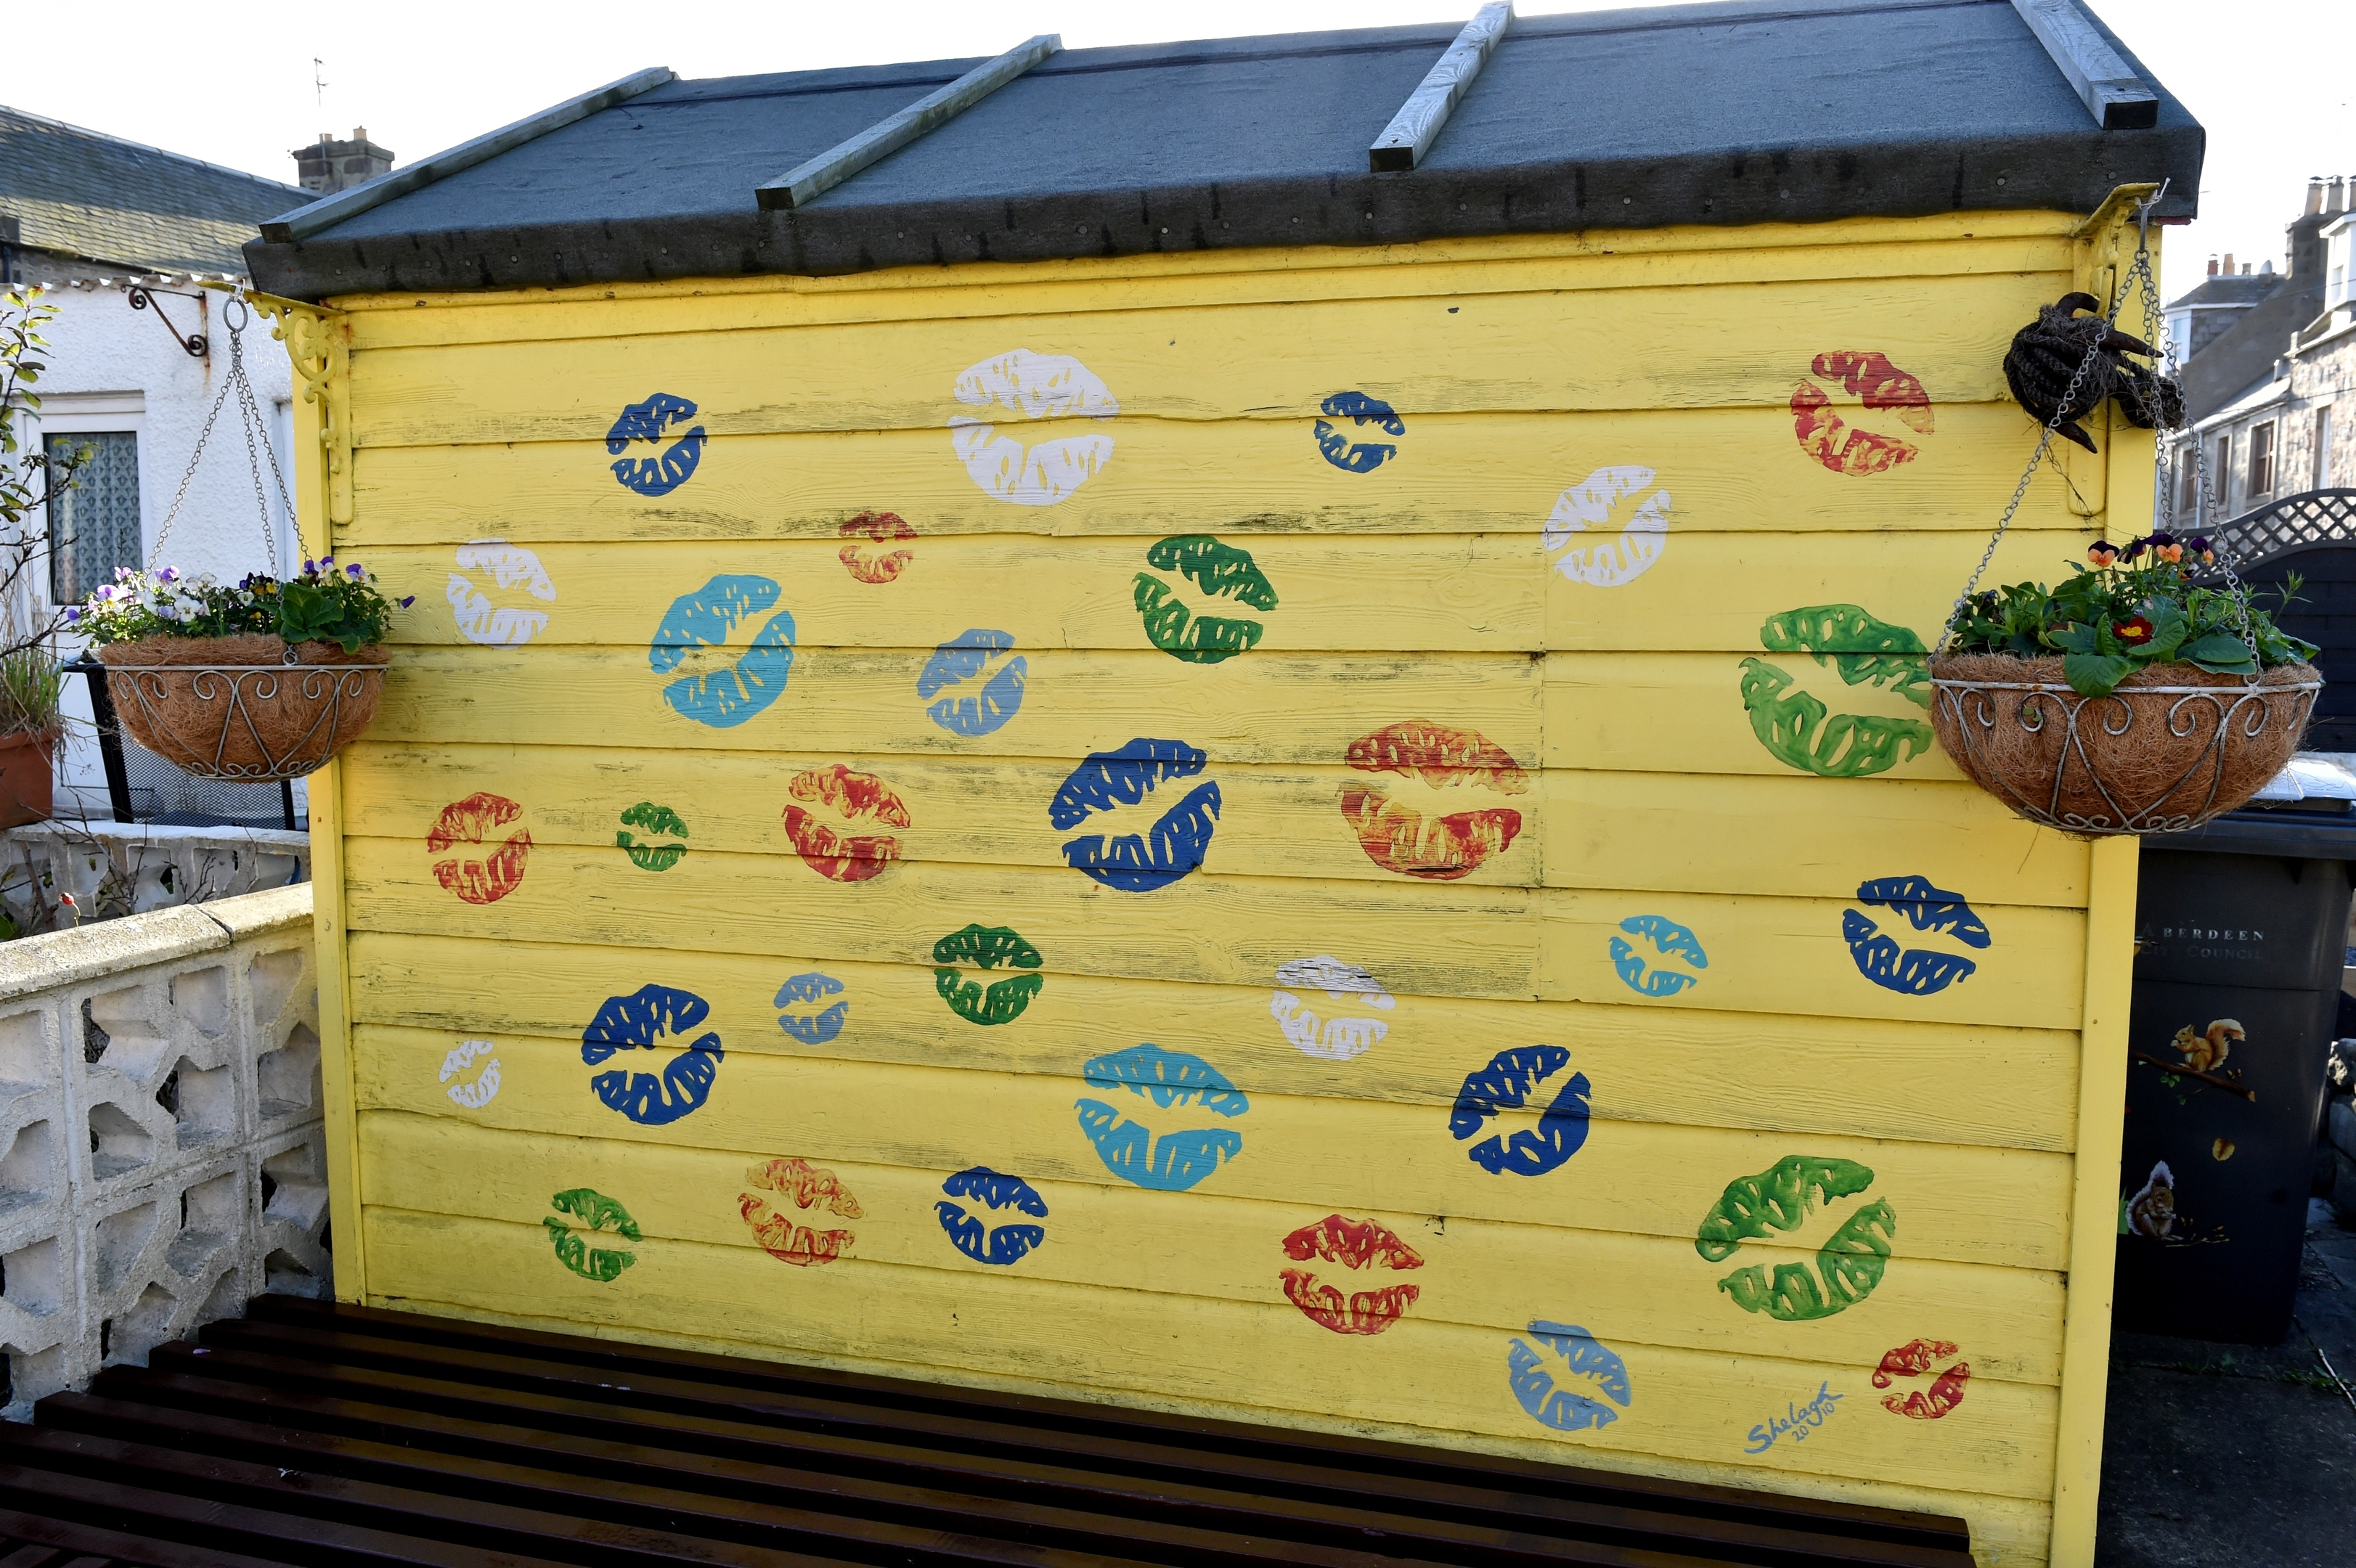 Even a shed in Fittie is made to stand out and put a smile on your face.